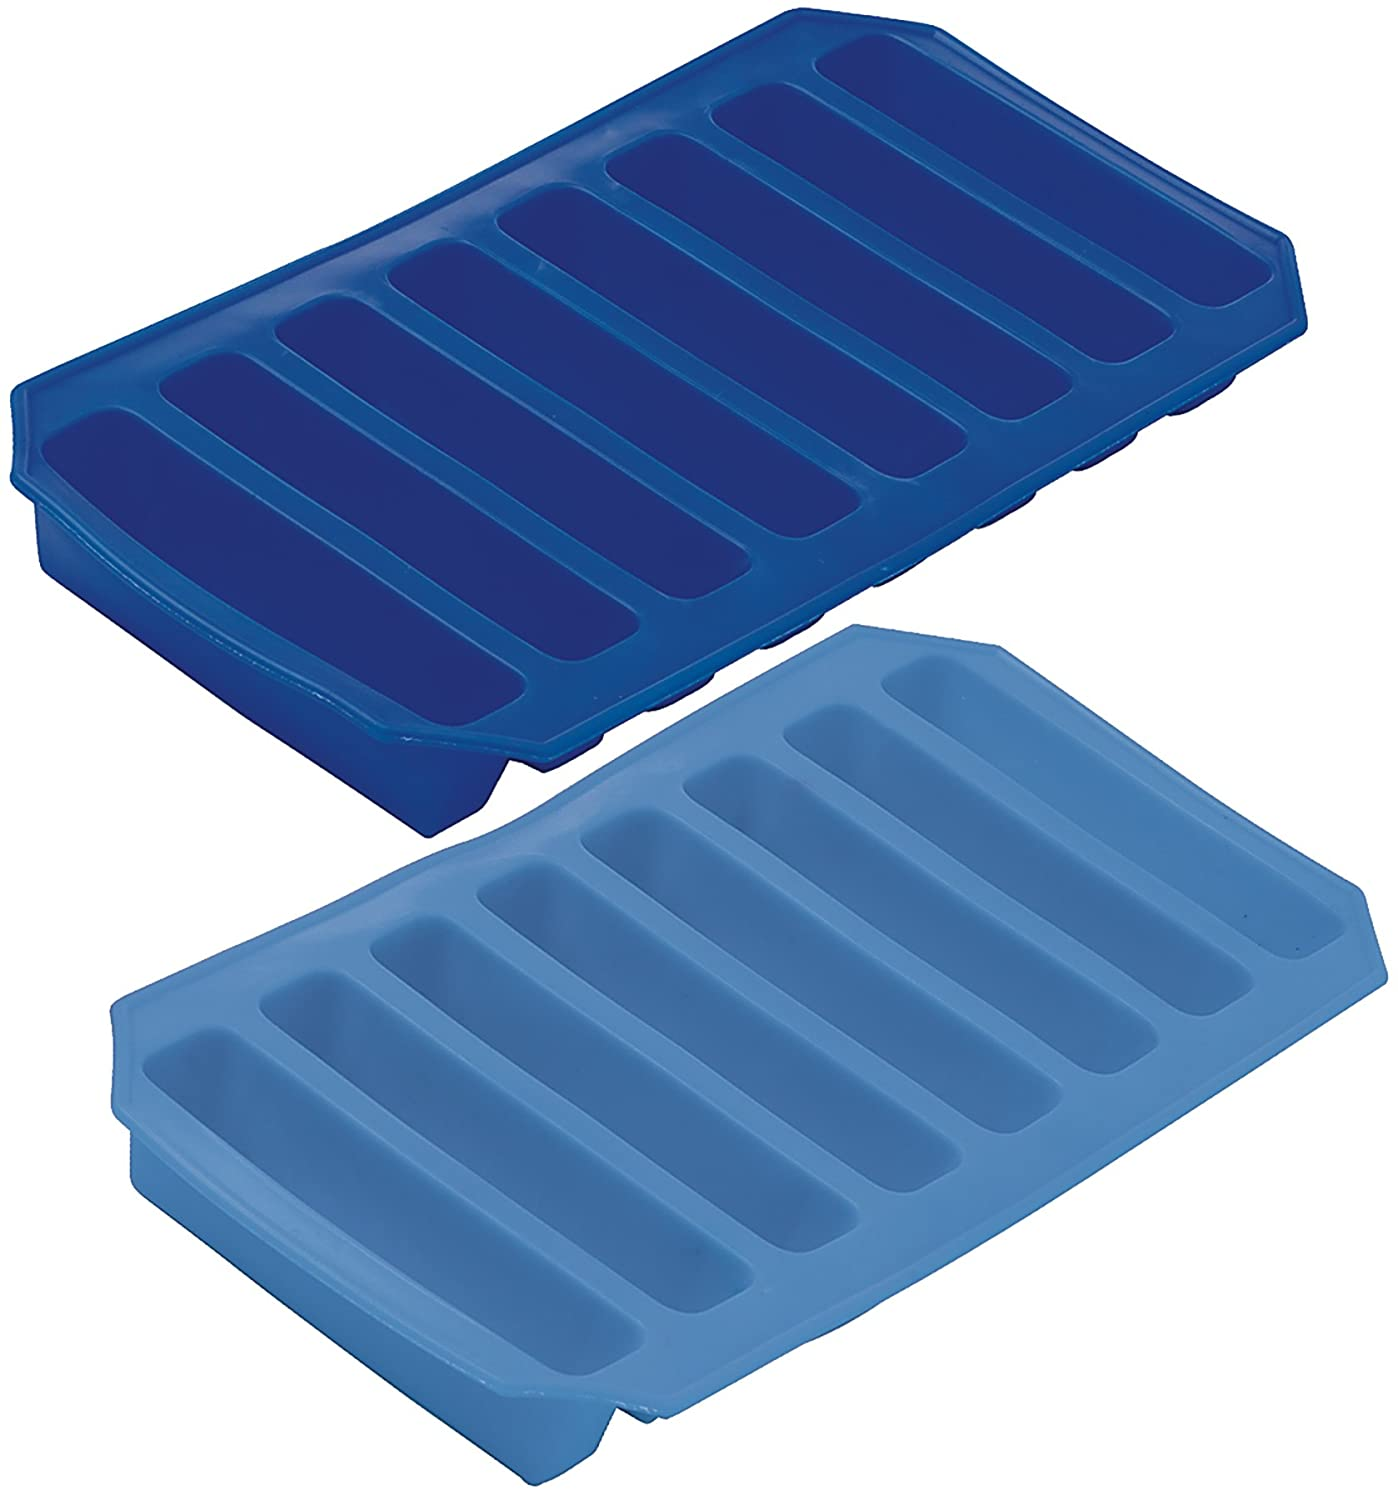 Prepworks by Progressive Flexible Ice Sticks Trays - Set of 2, Ice Cube Tray, Cylinder Ice Cubes, Silicone Tray PLIR-6